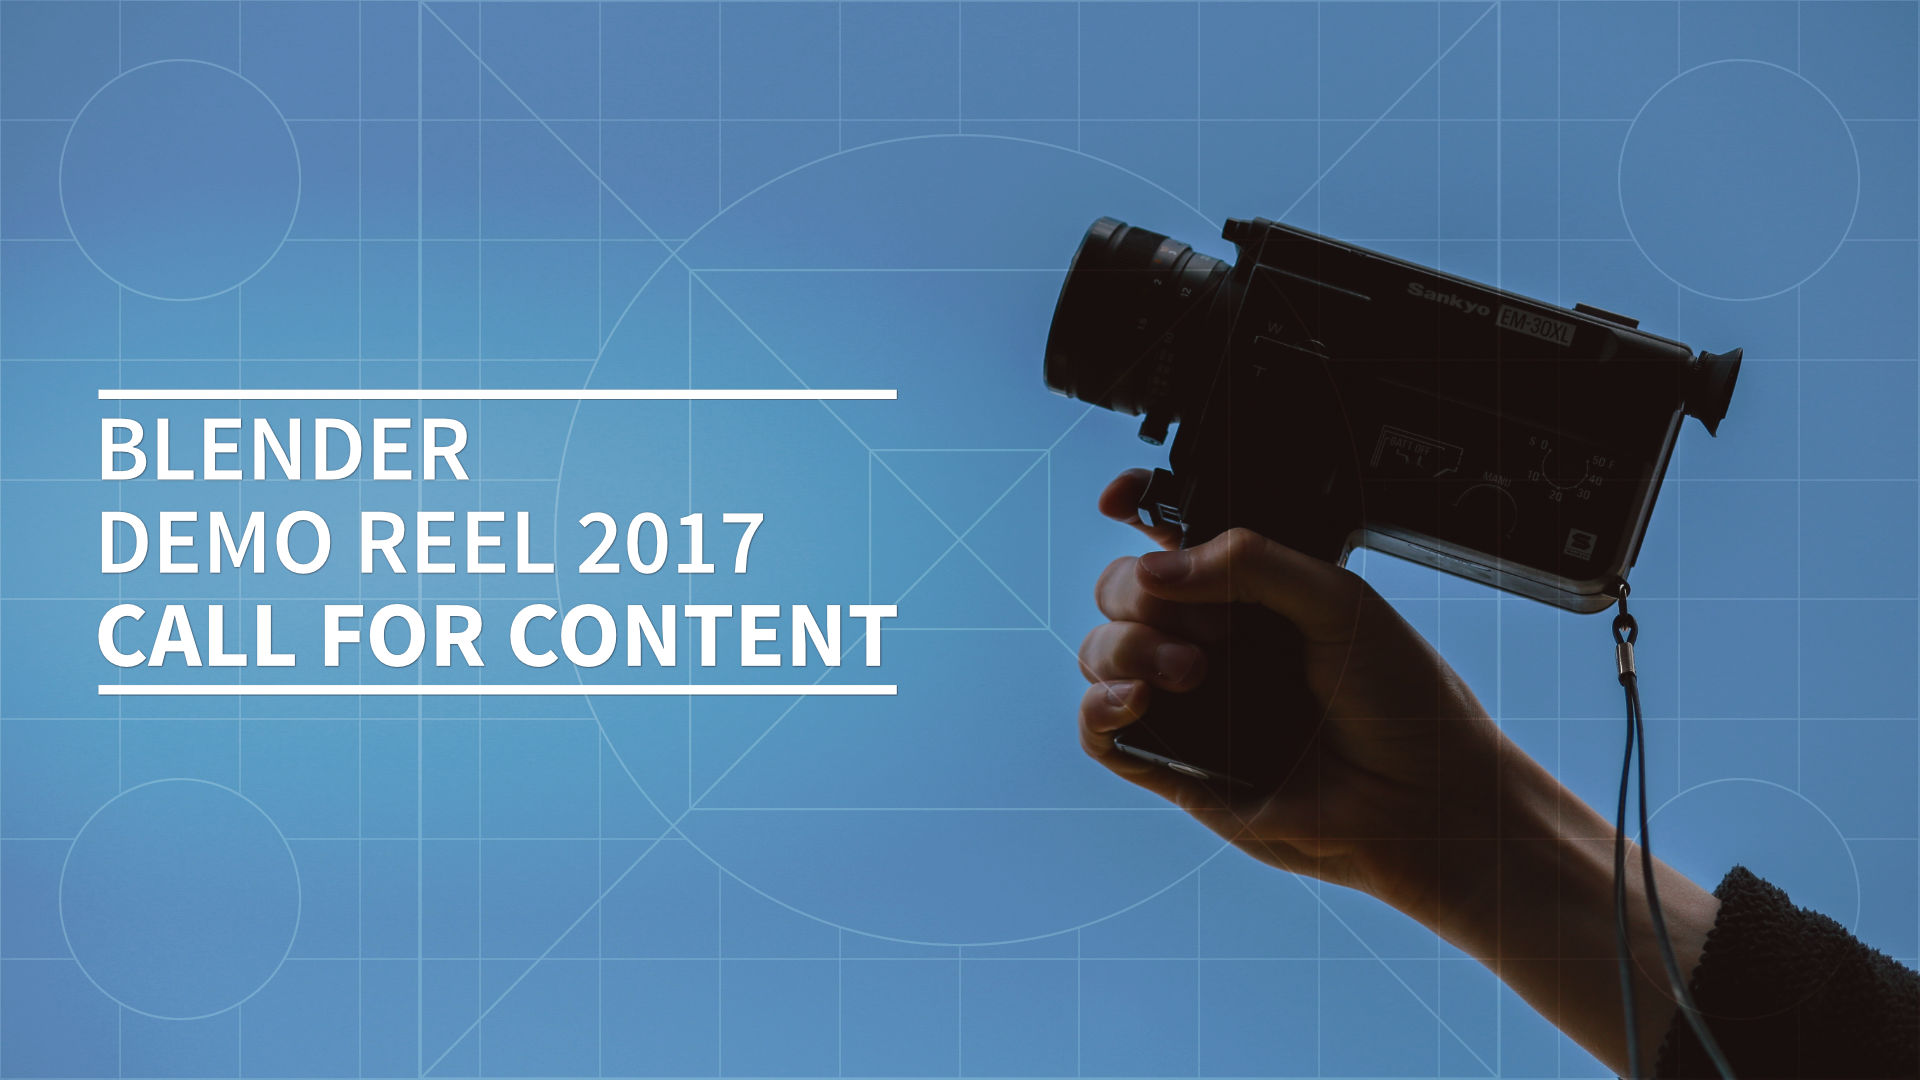 Blender Demo Reel 2017 call for content